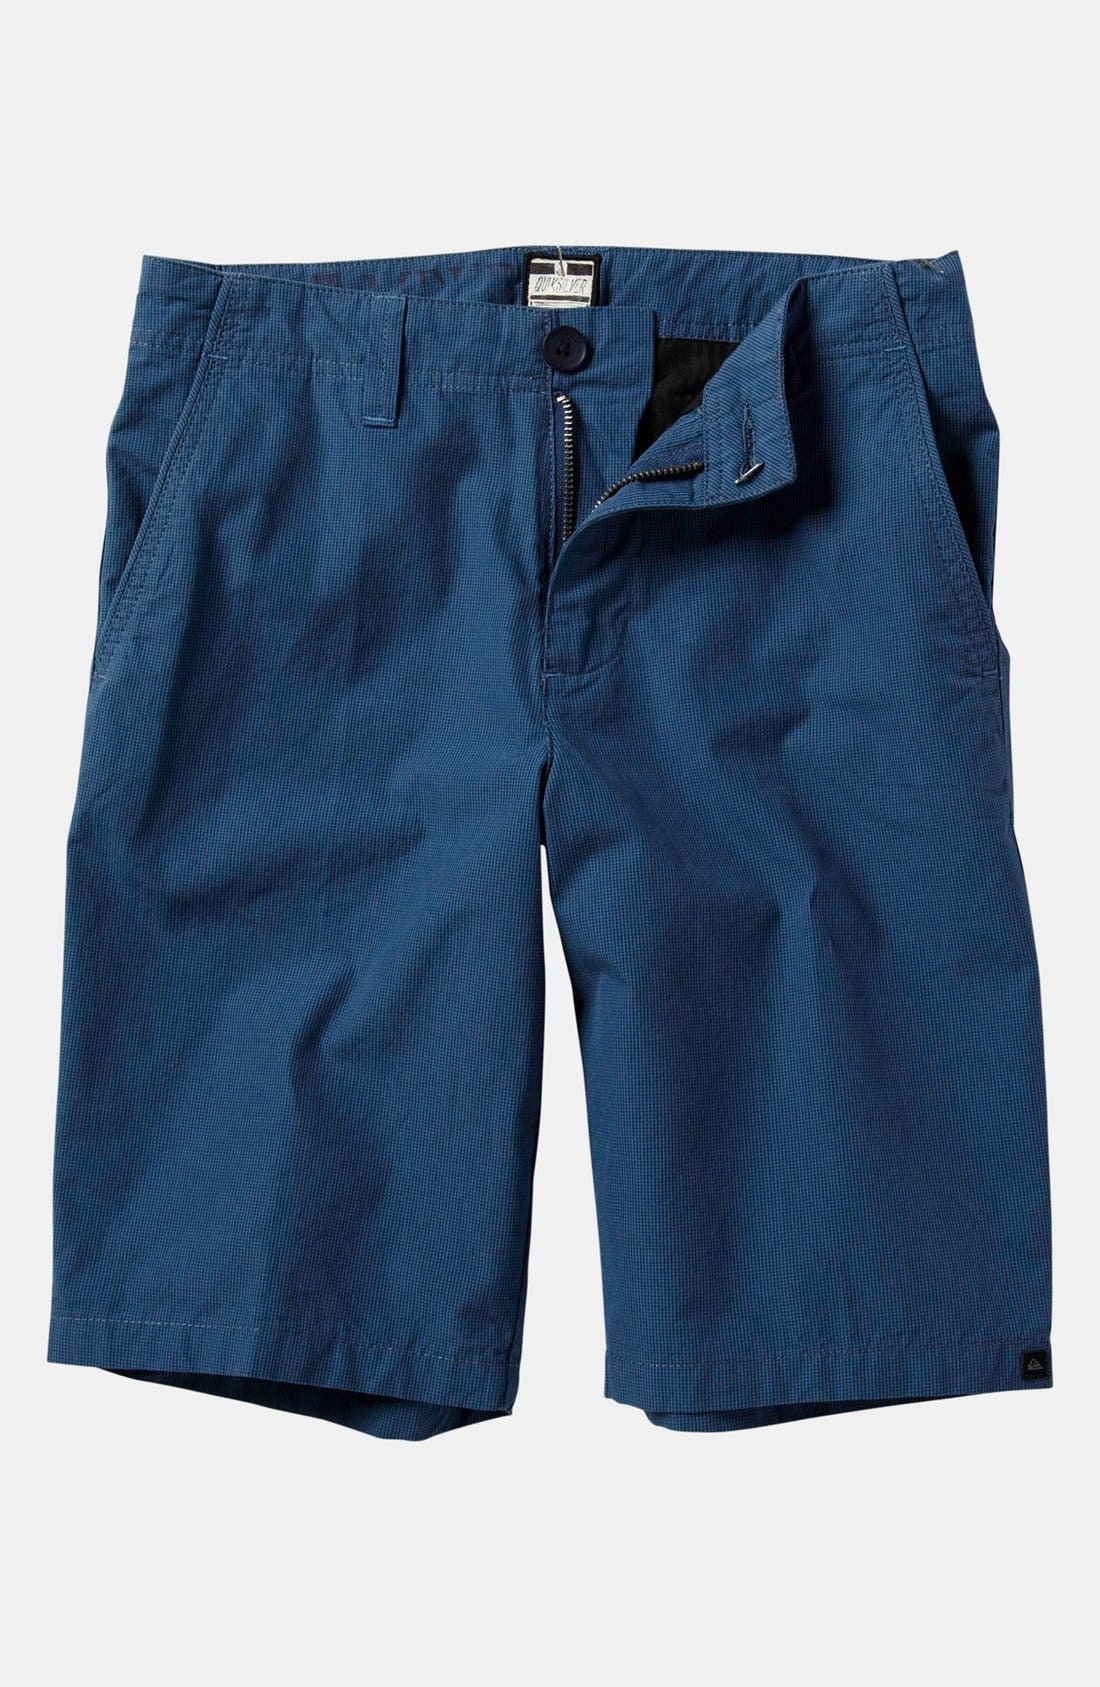 Alternate Image 1 Selected - Quiksilver 'Nugget' Shorts (Big Boys)